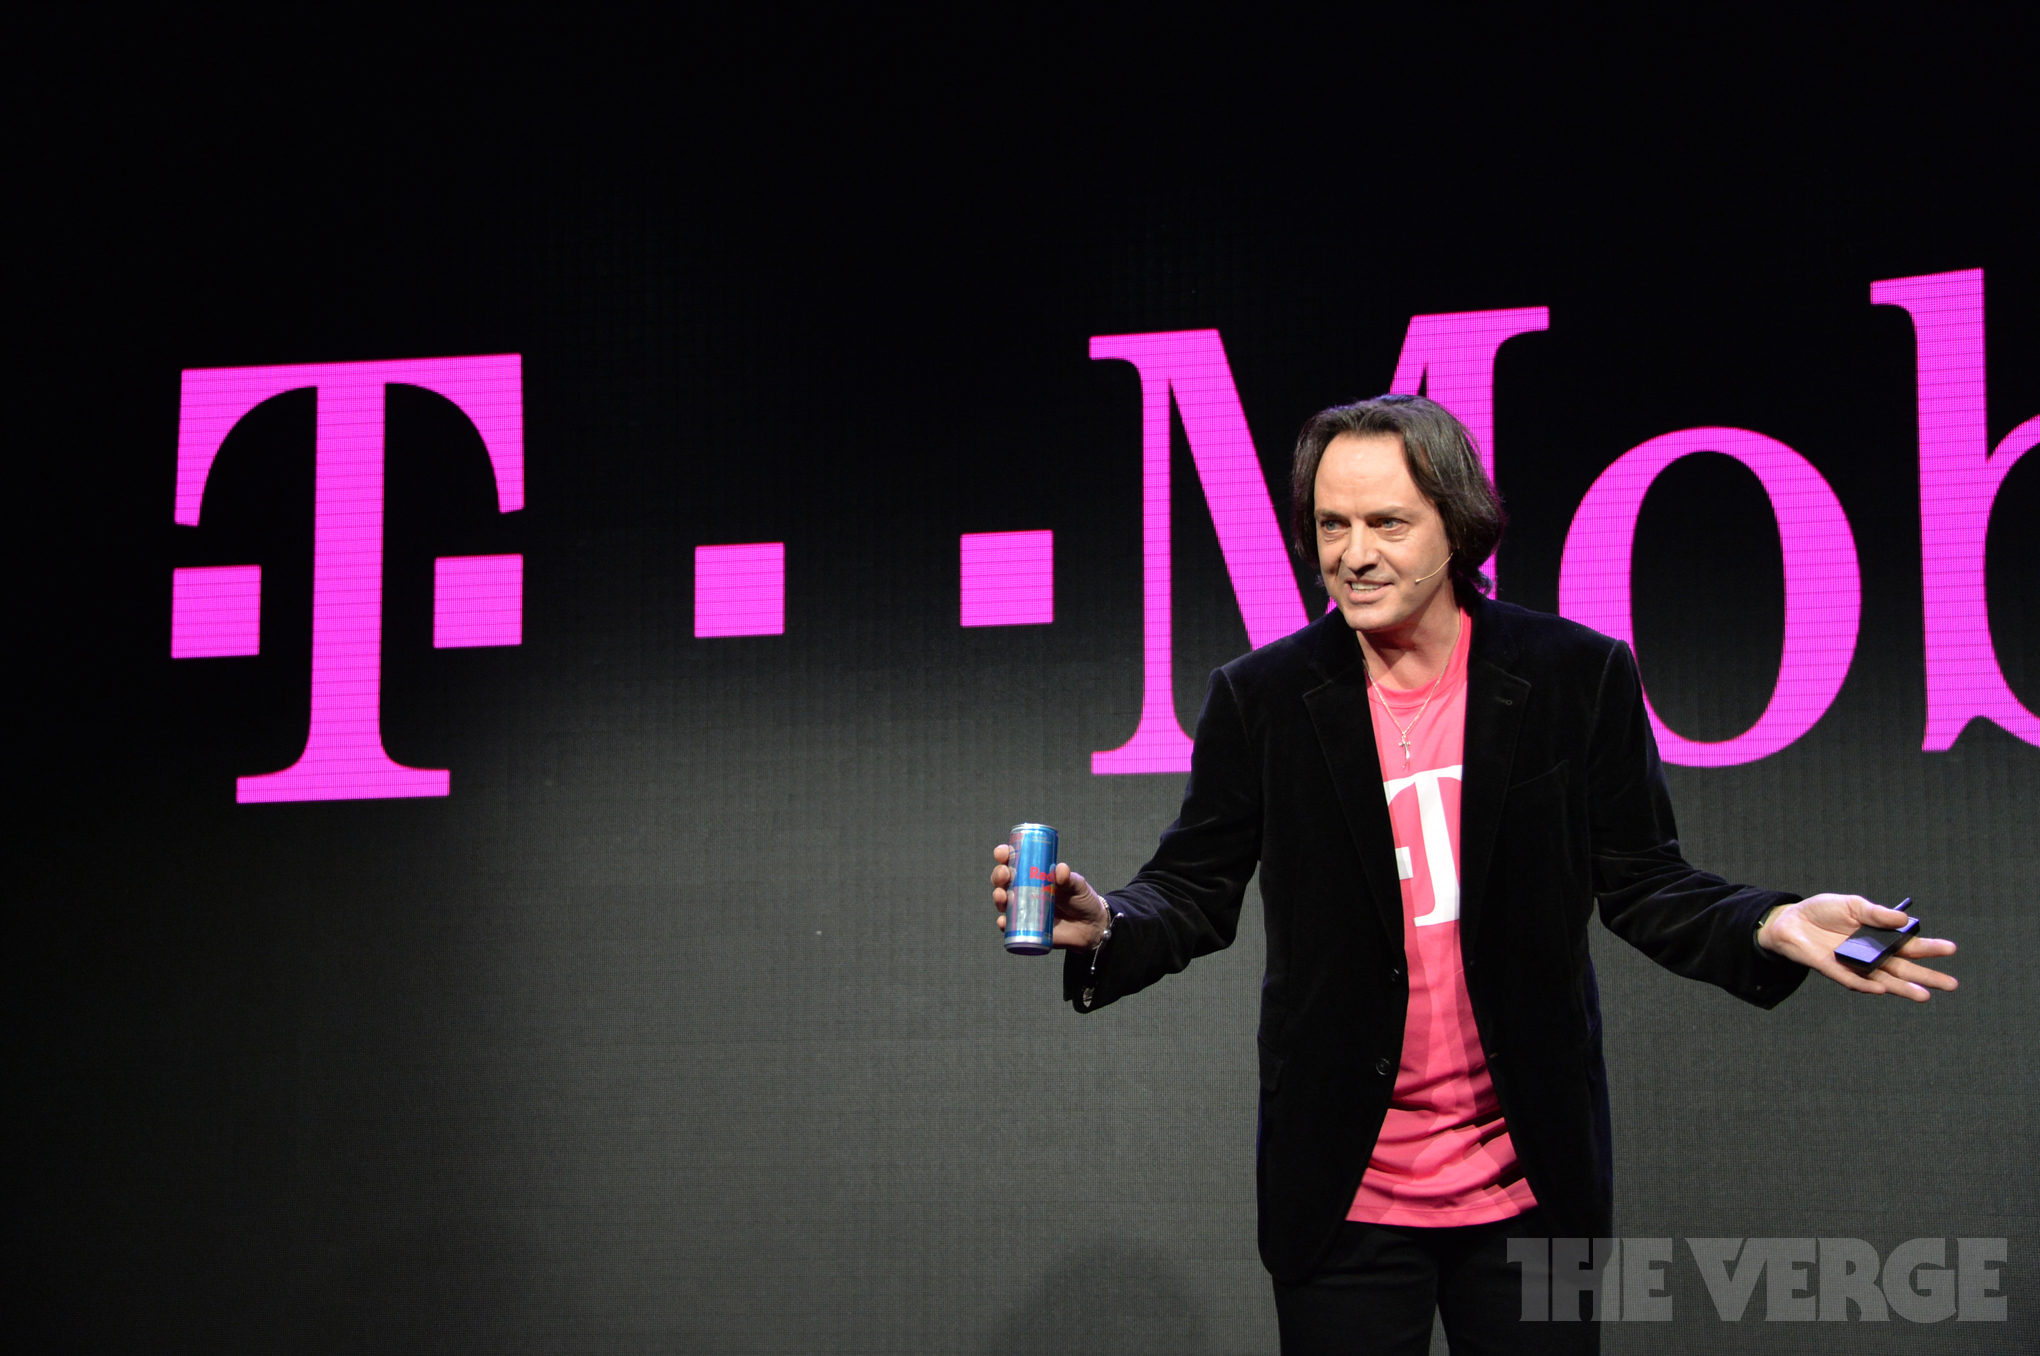 T-Mobile executive says company is 'pivoting away' from unlimited data